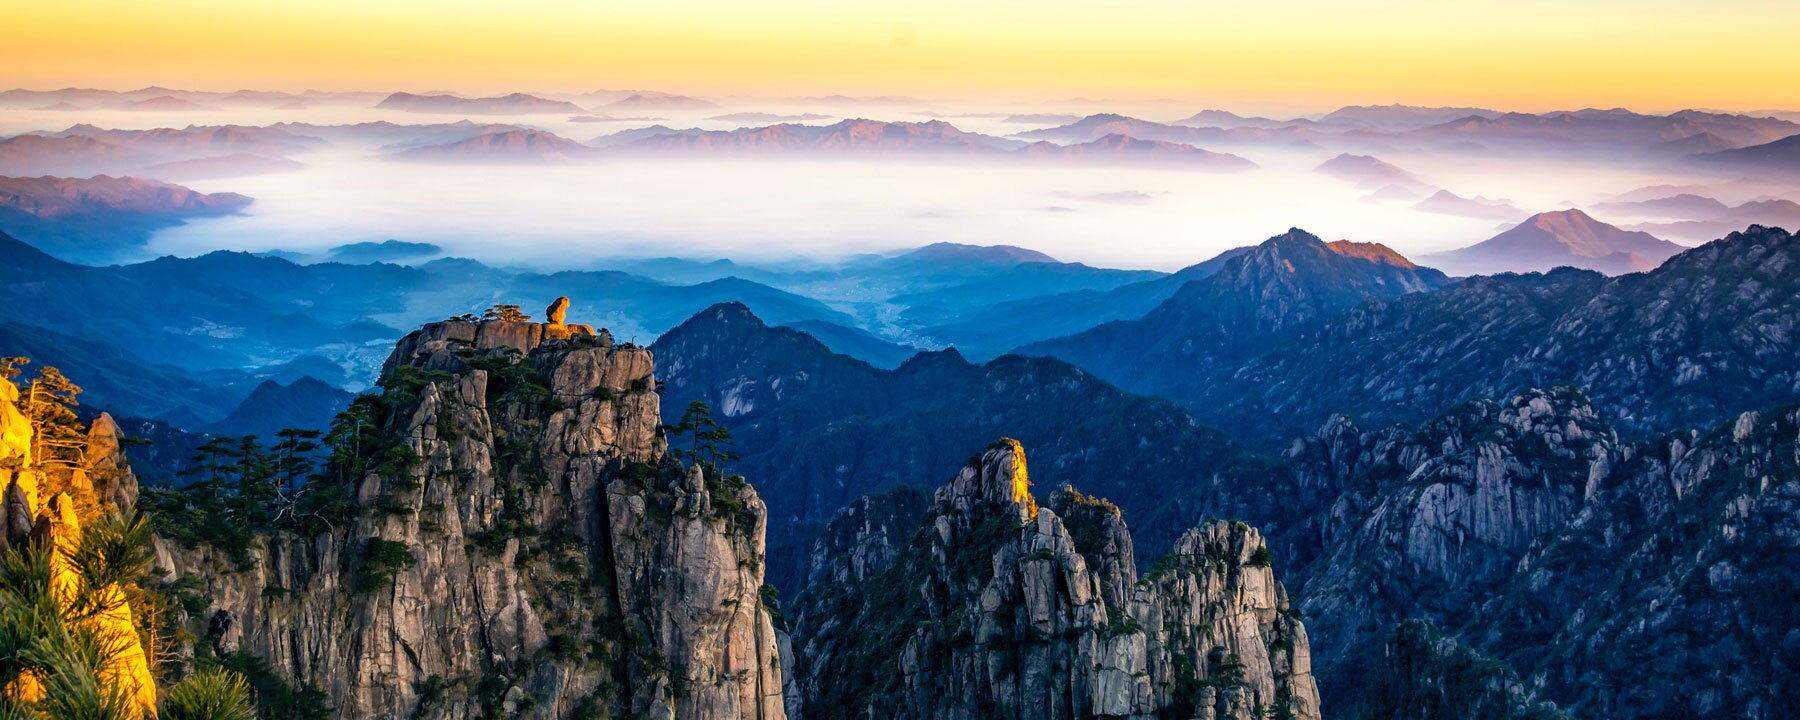 China's Famous Mountains